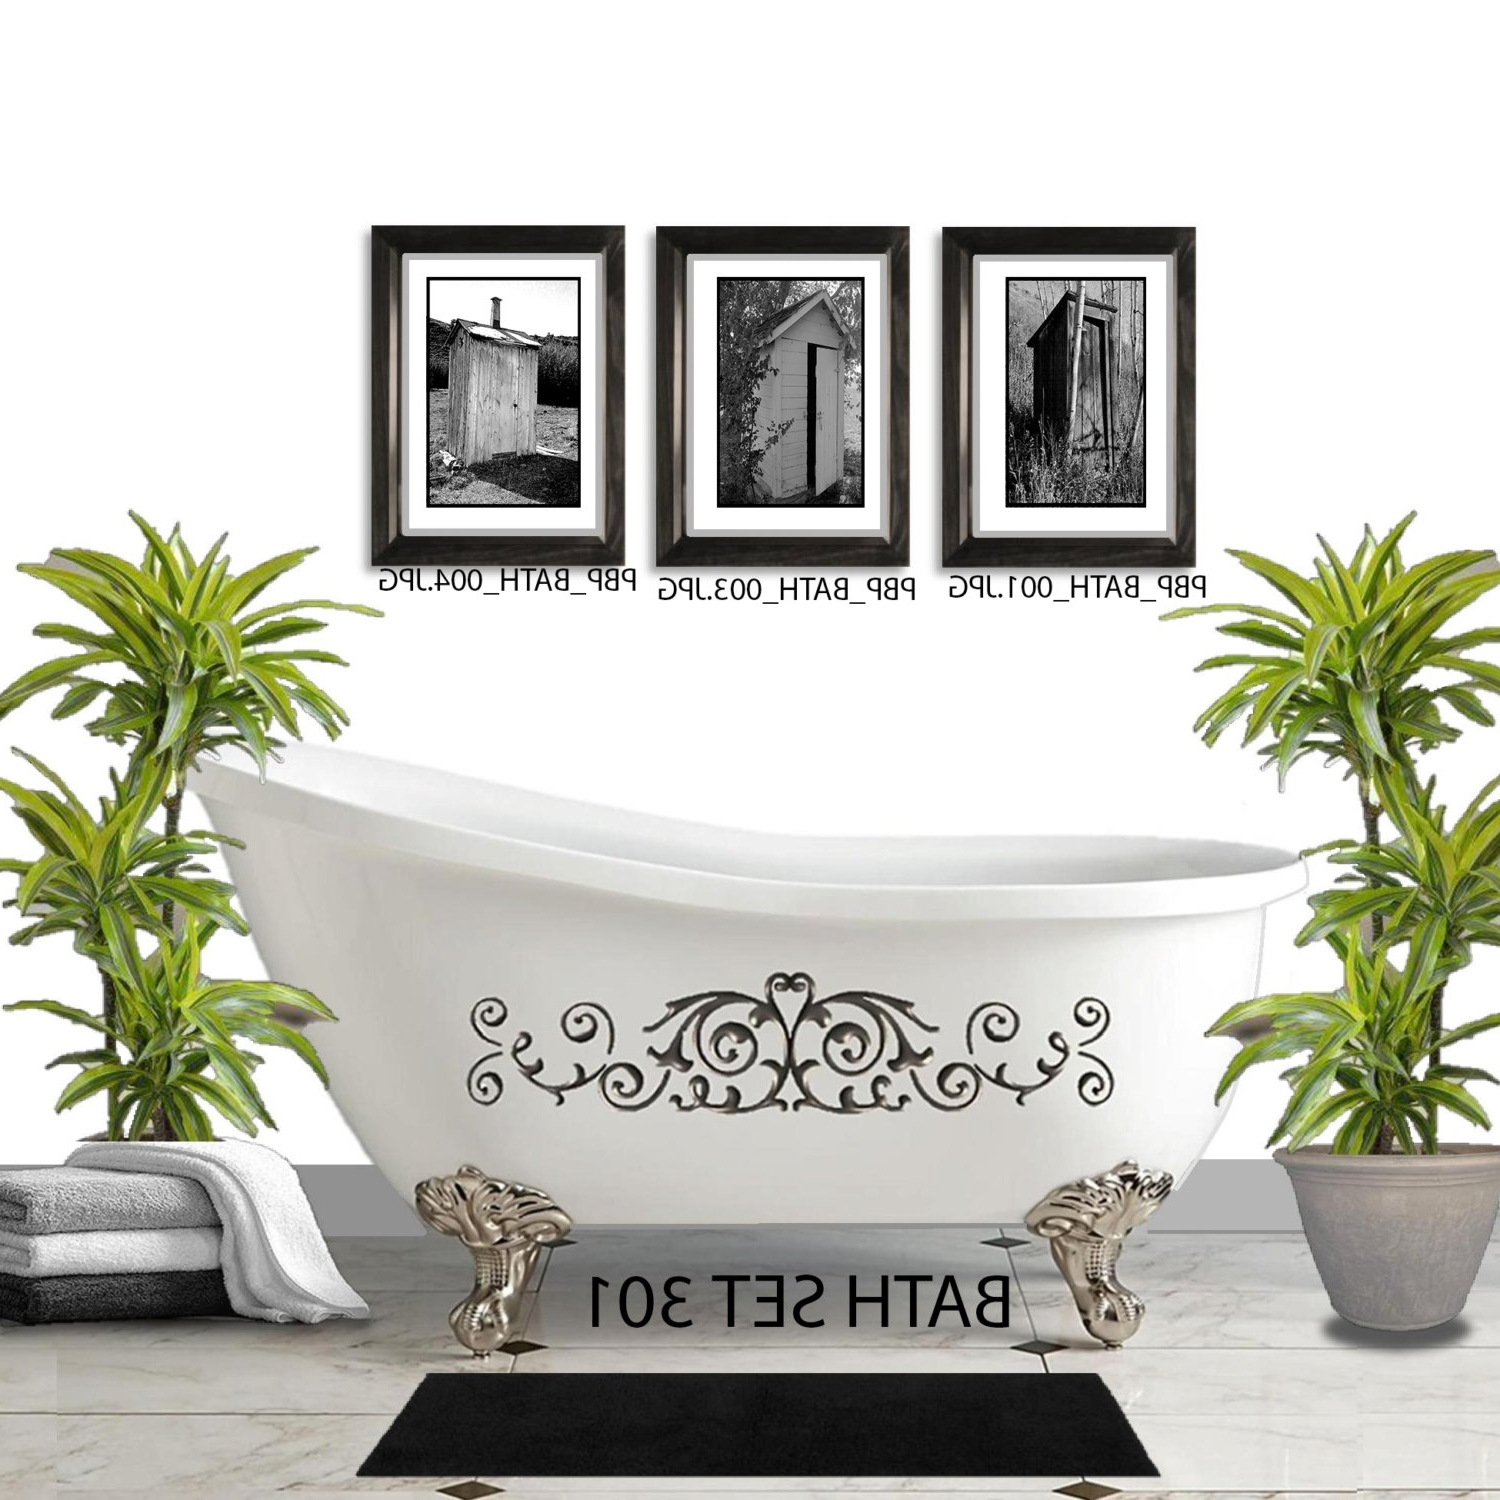 Vintage Bath Framed Art Prints Set Of 3 With Regard To Most Recent Wall Sets – Picturebypicturedesigns (View 14 of 15)